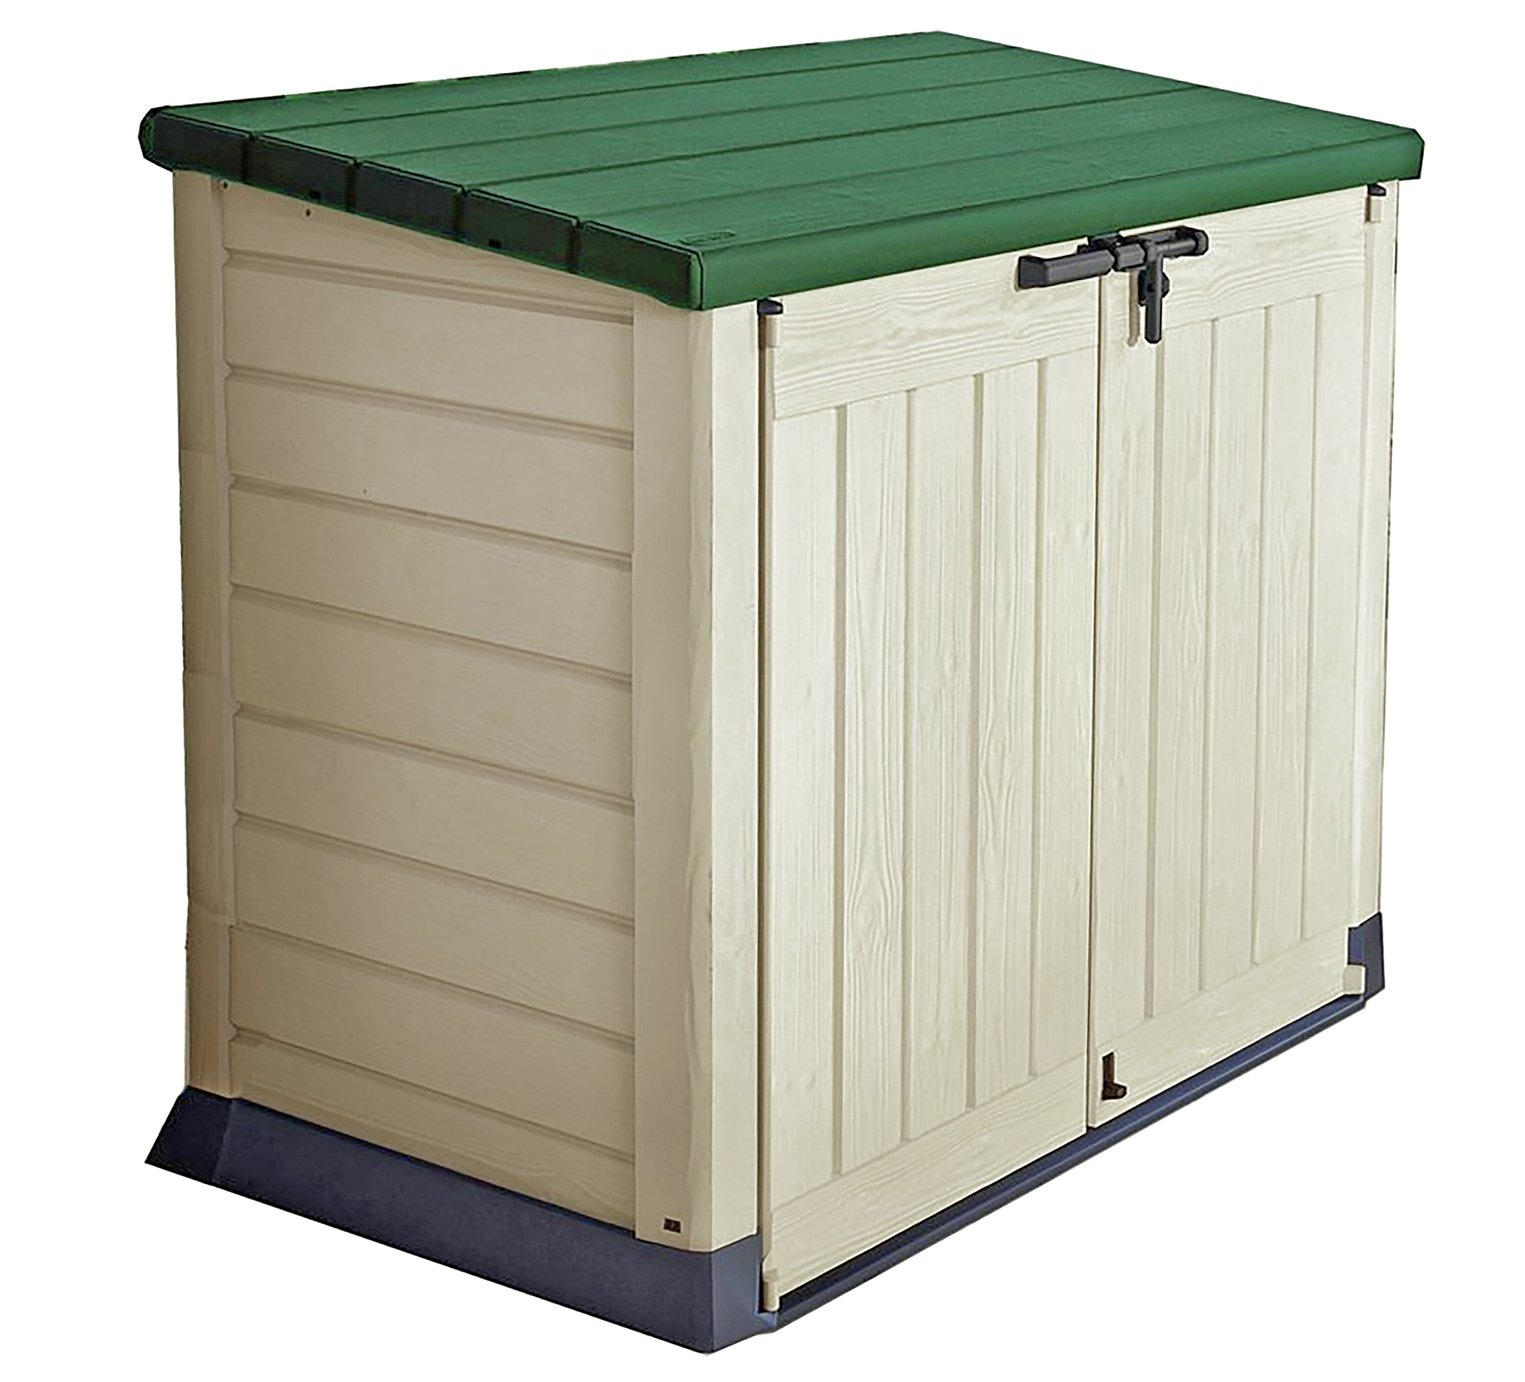 Keter Store It Out Max Storage Box 1200L - Beige/Green